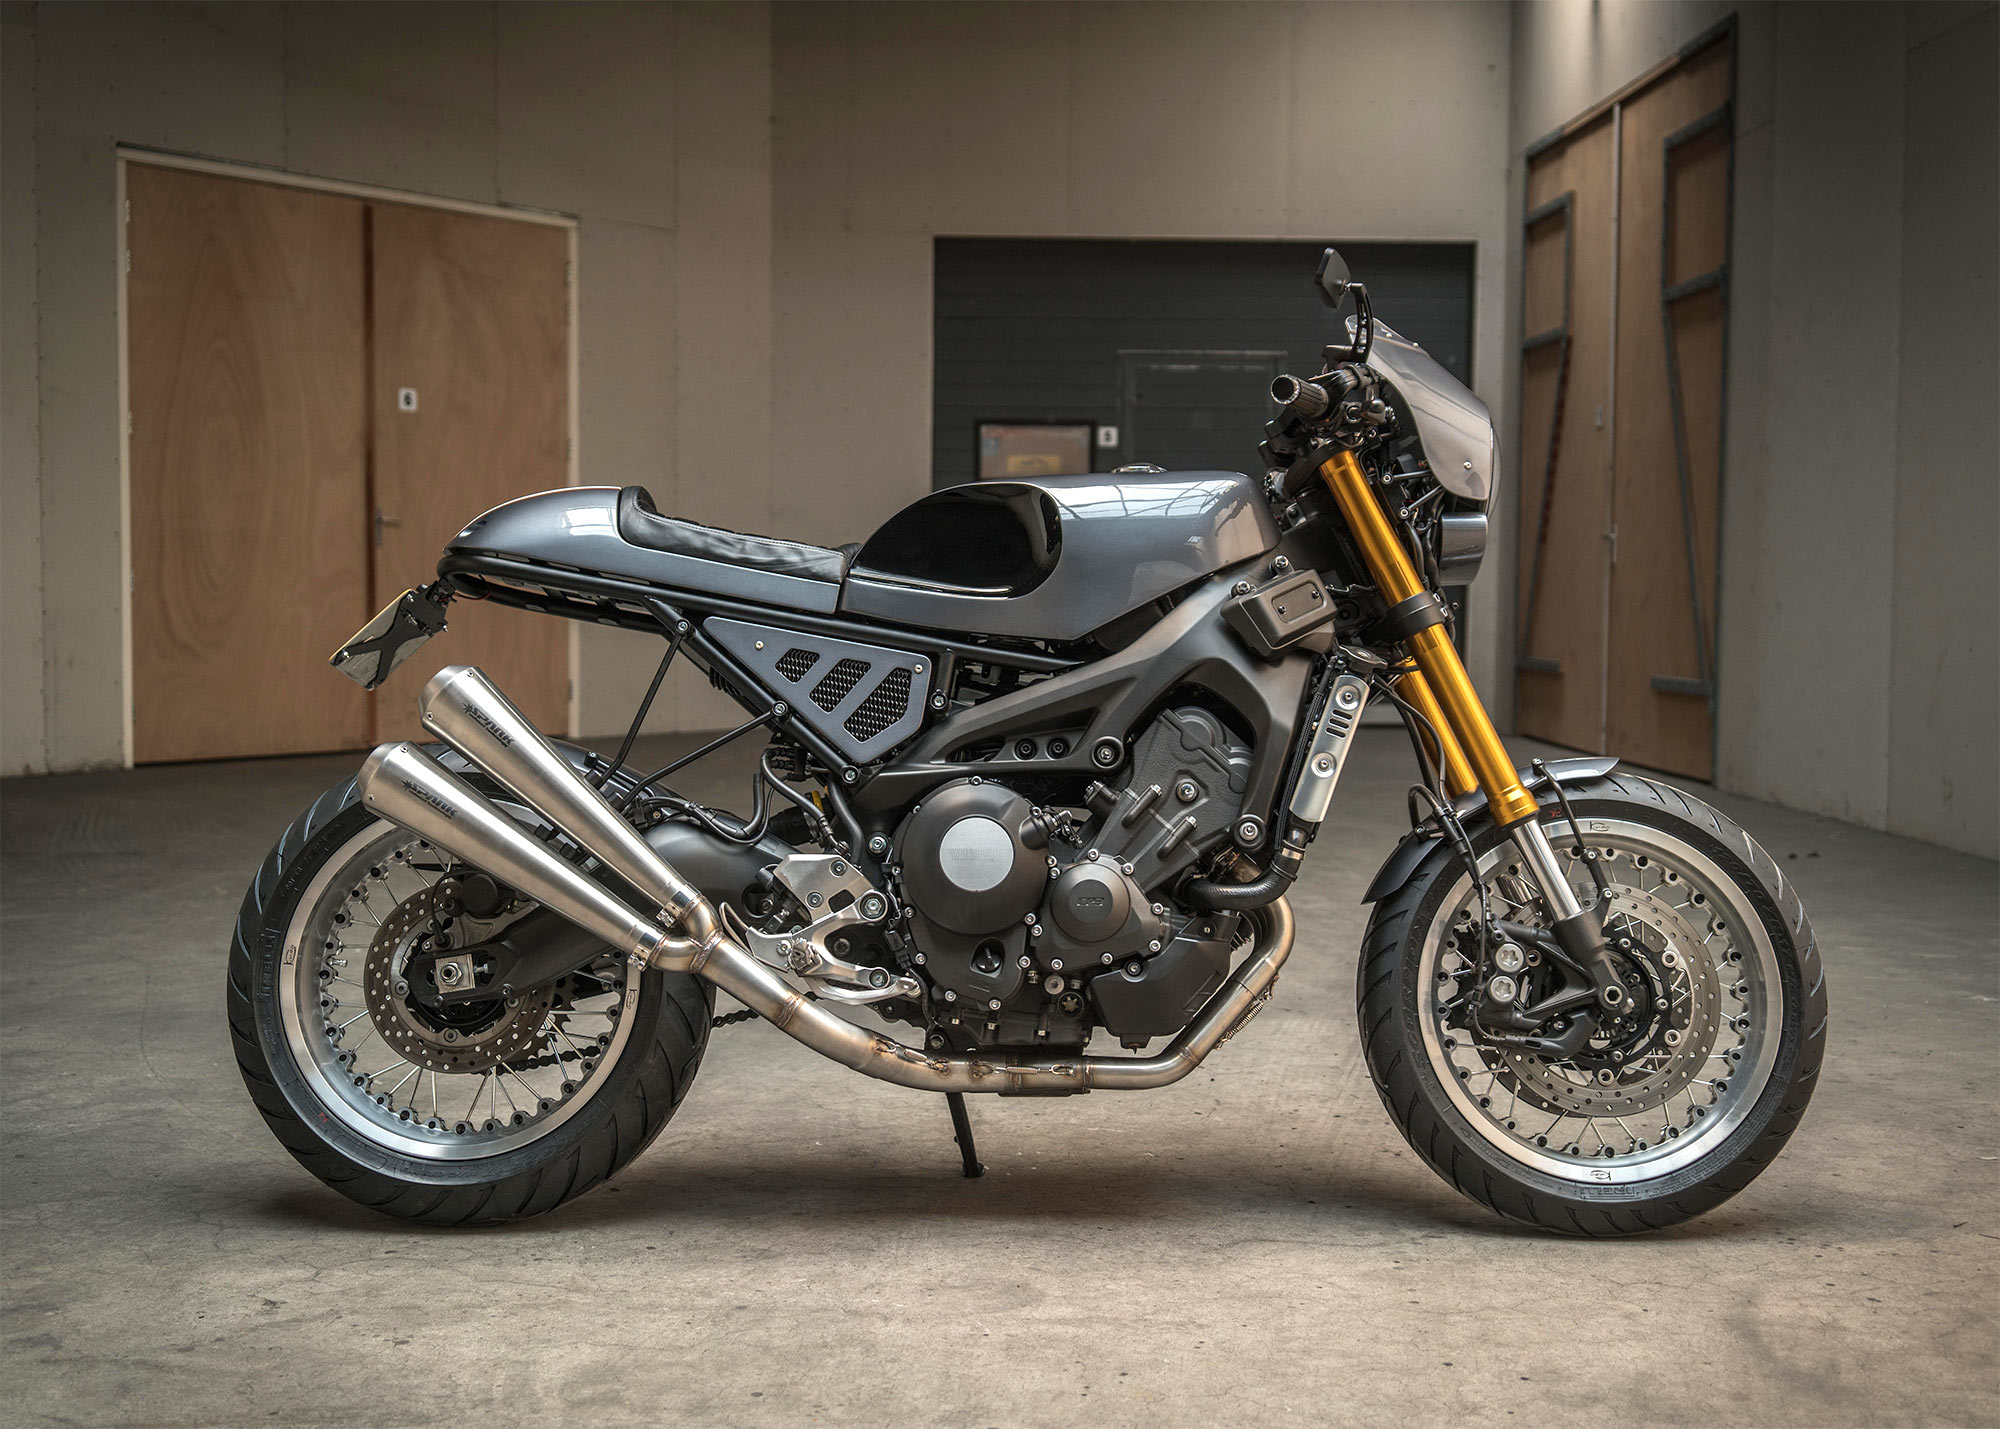 Ironwood Motorcycles Yamaha XSR900 Cafe Racer